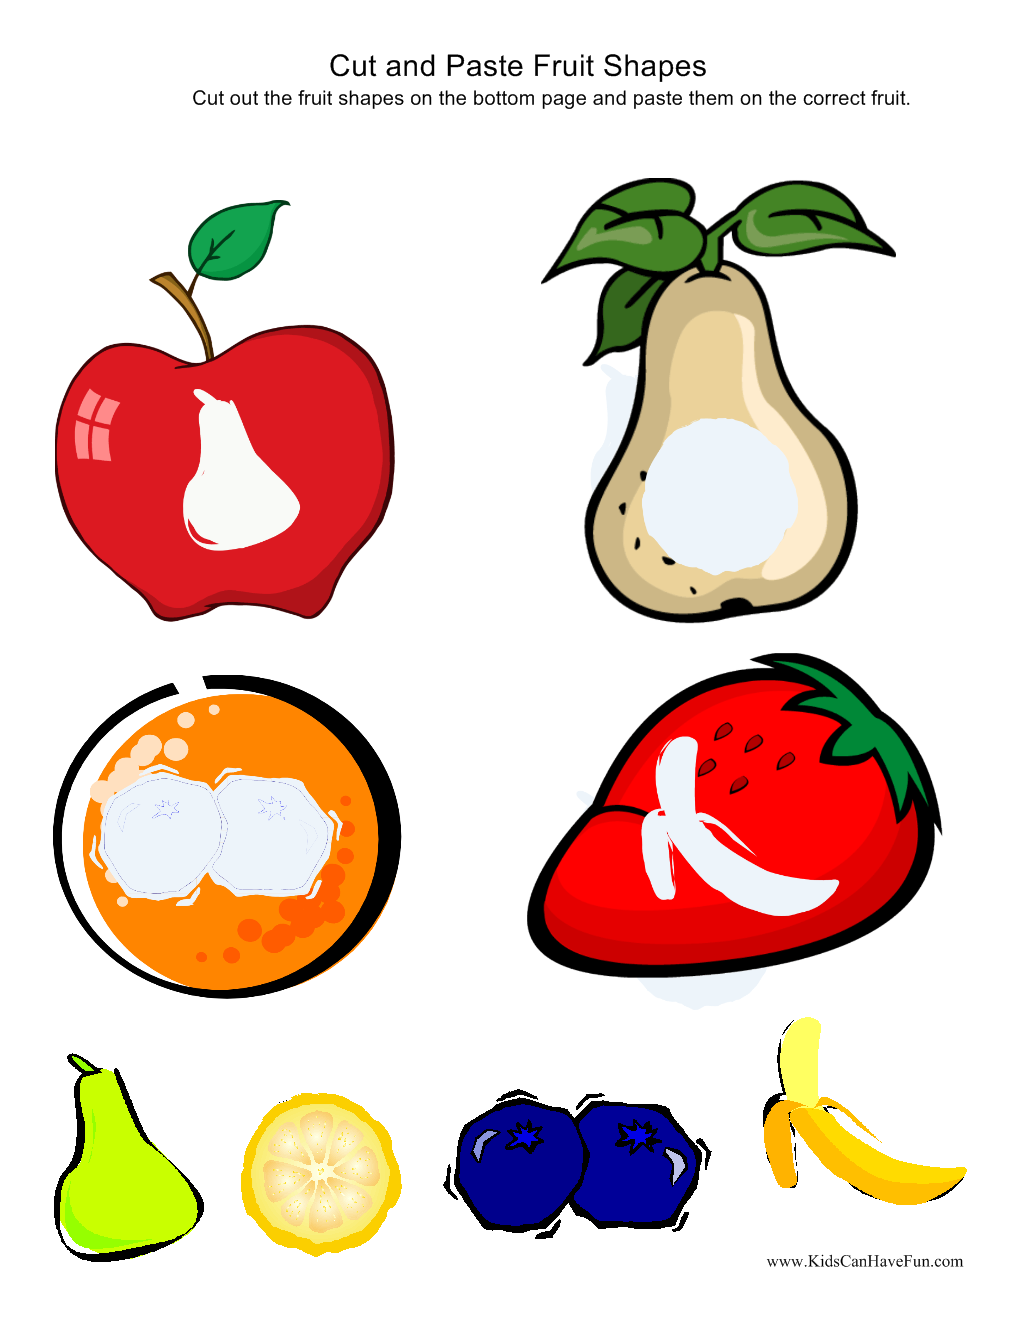 Cut and Paste Fruit Shapes